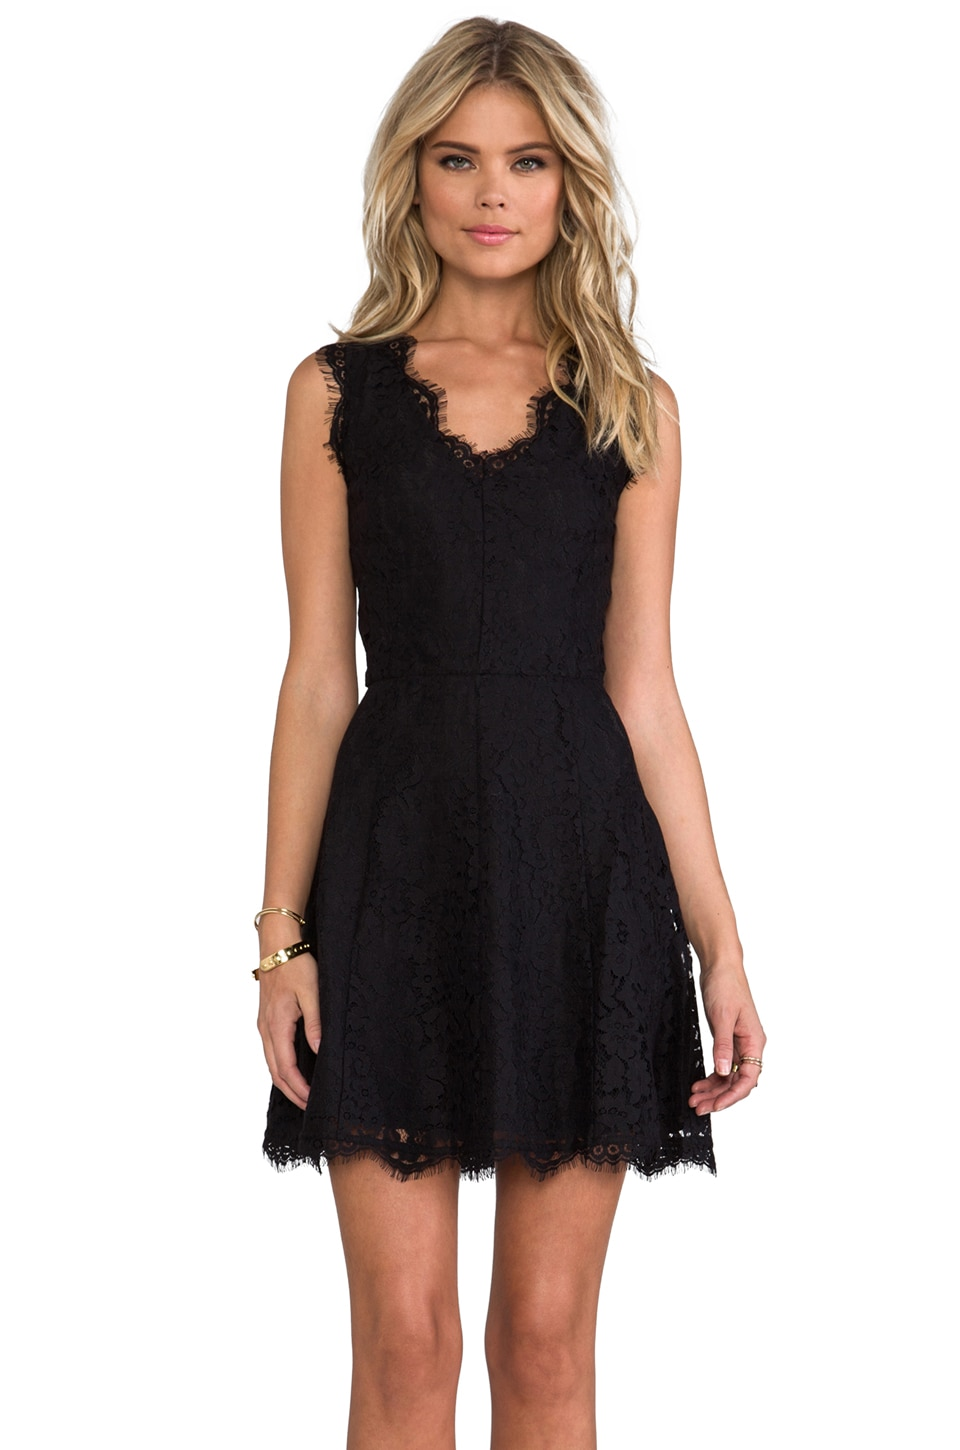 Joie Allover Lace Nikolina B Dress in Caviar